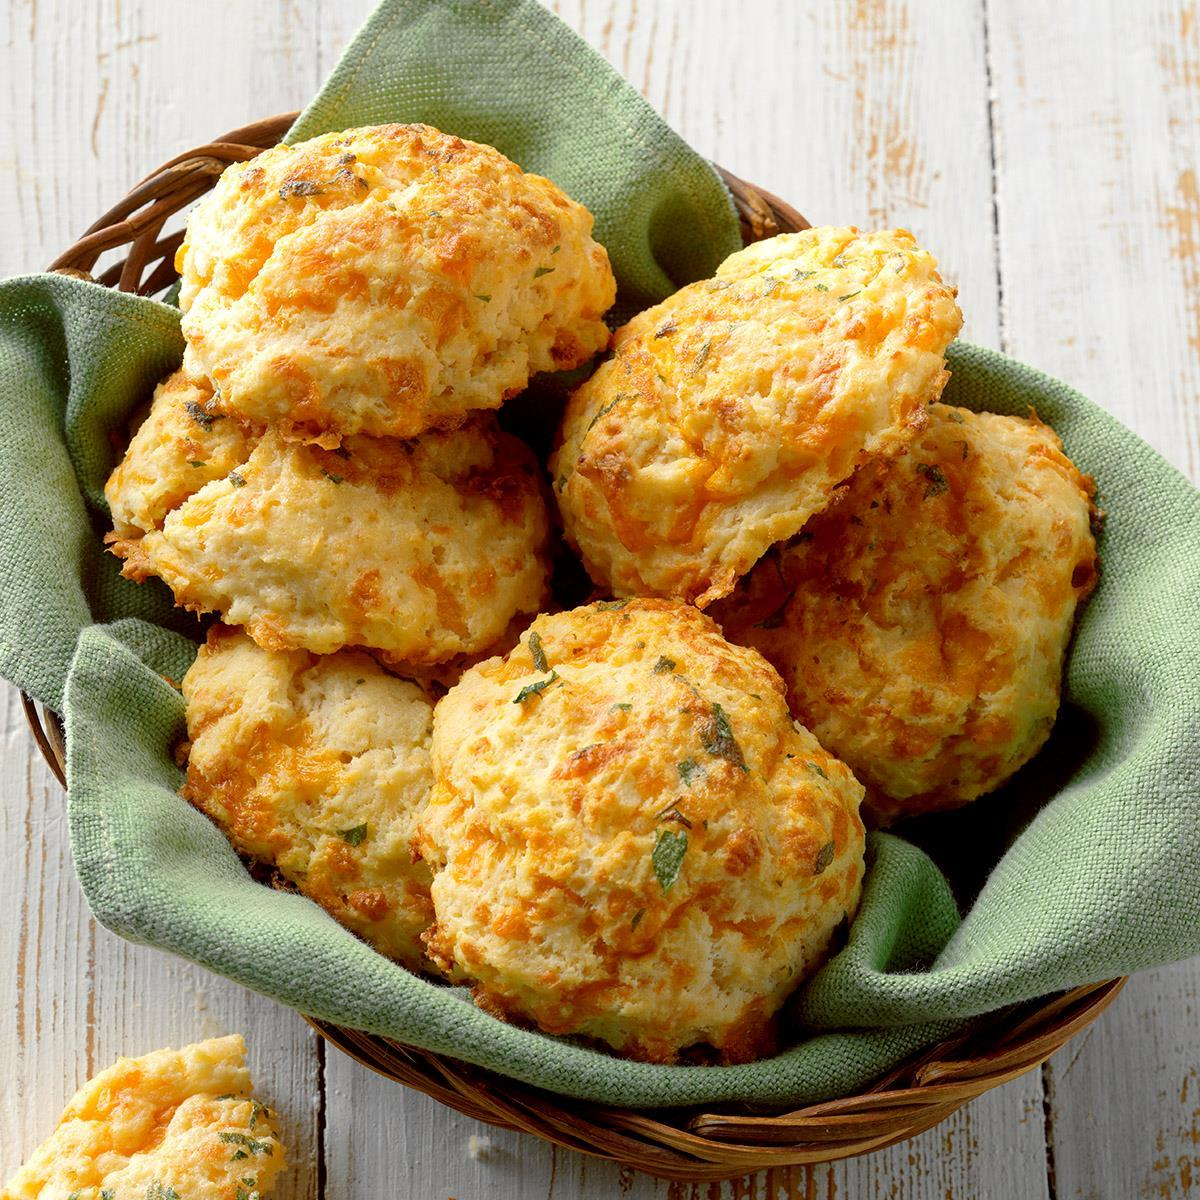 Sour Cream & Cheddar Biscuits image